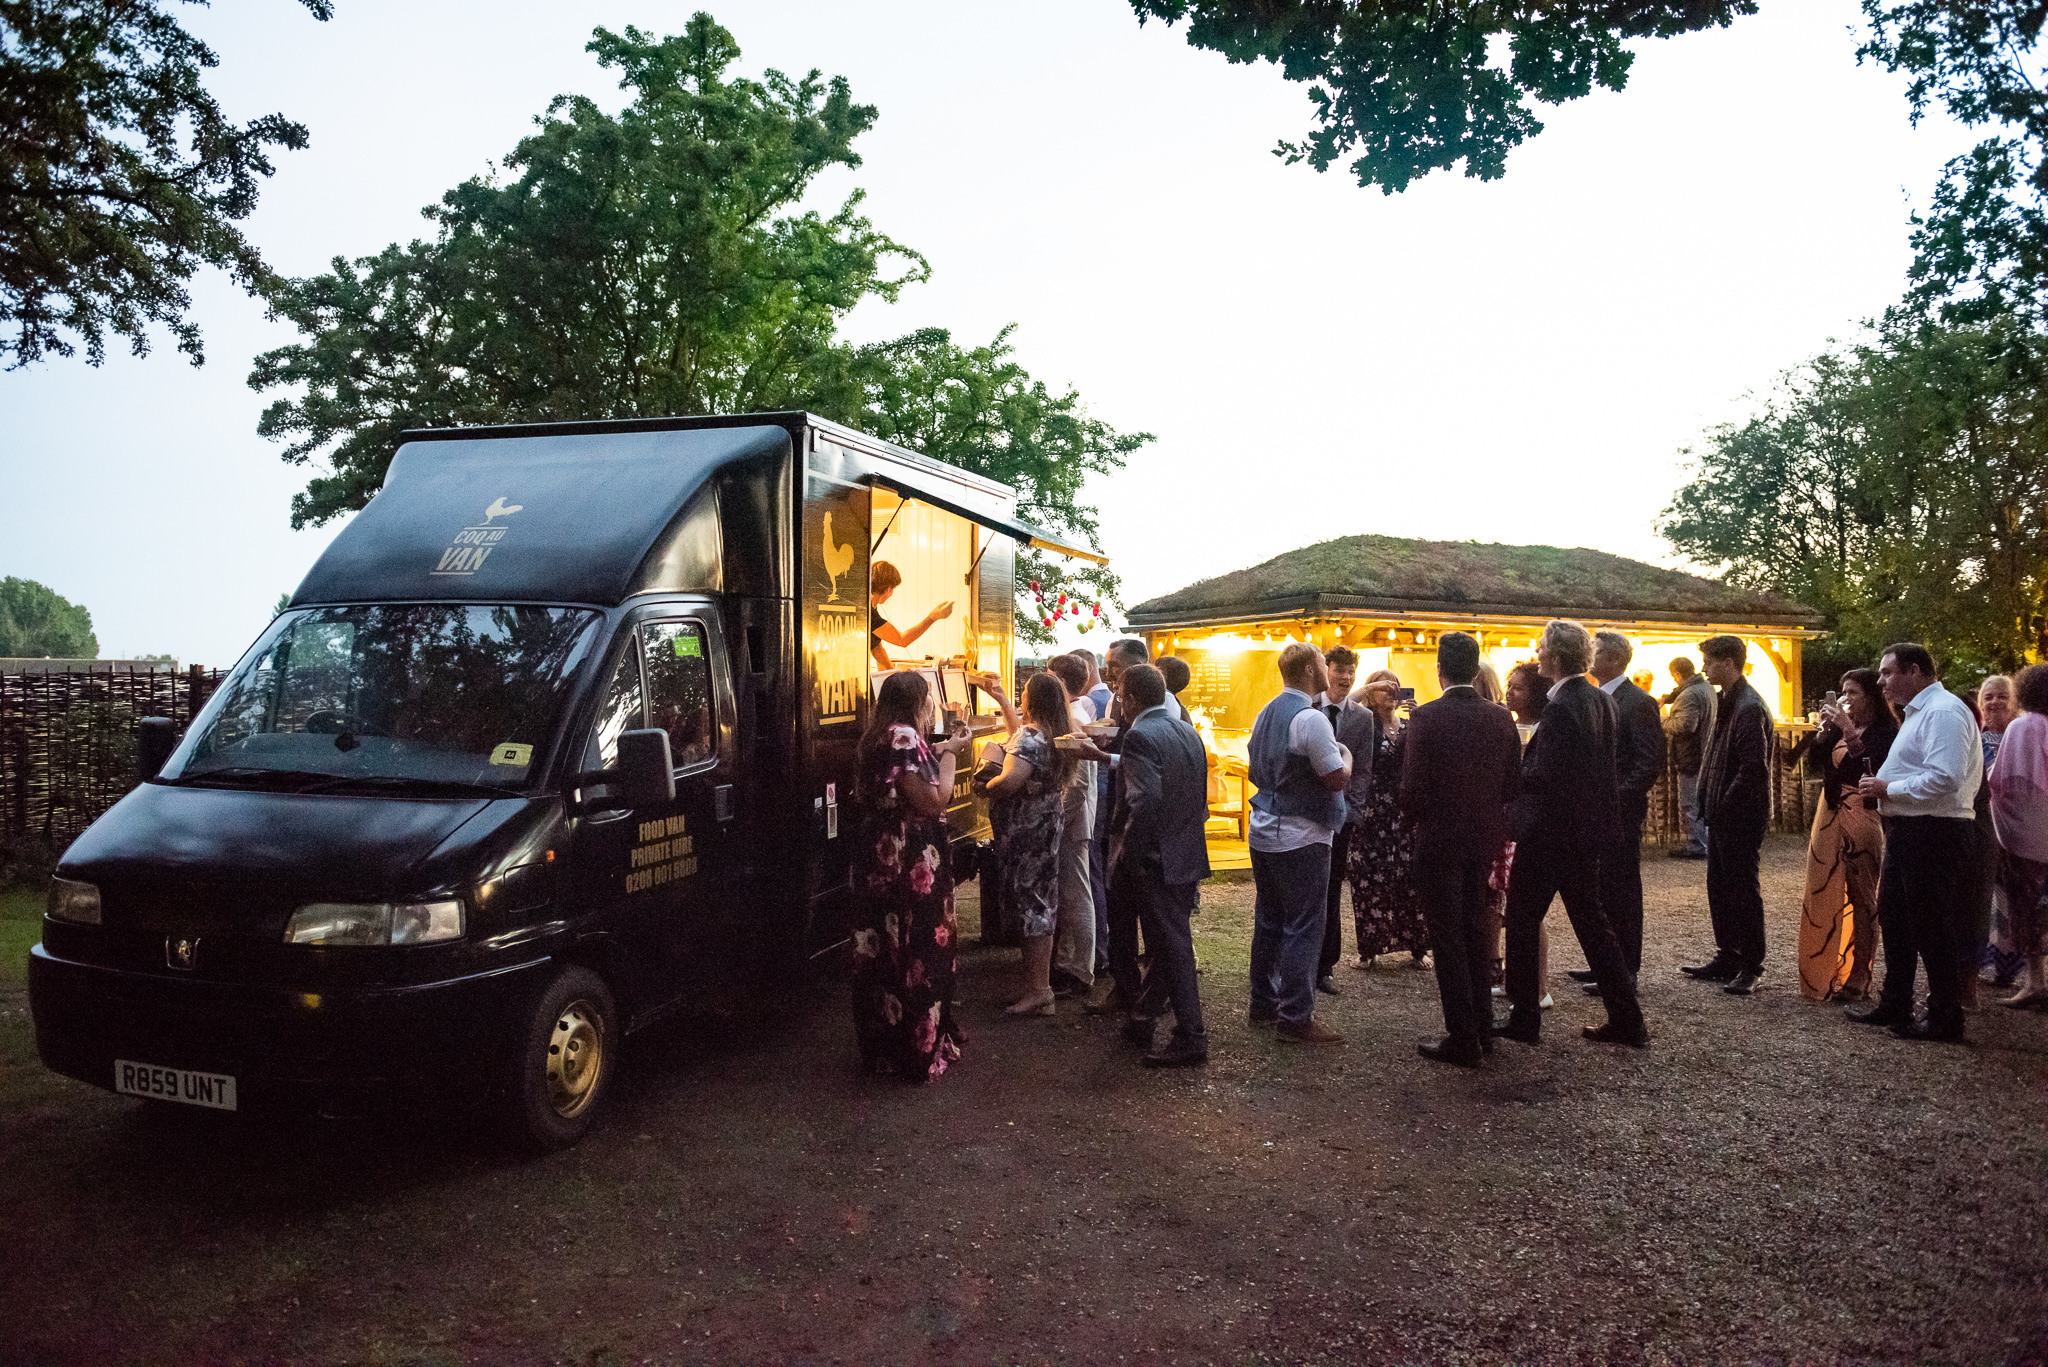 Guests queue at a food van